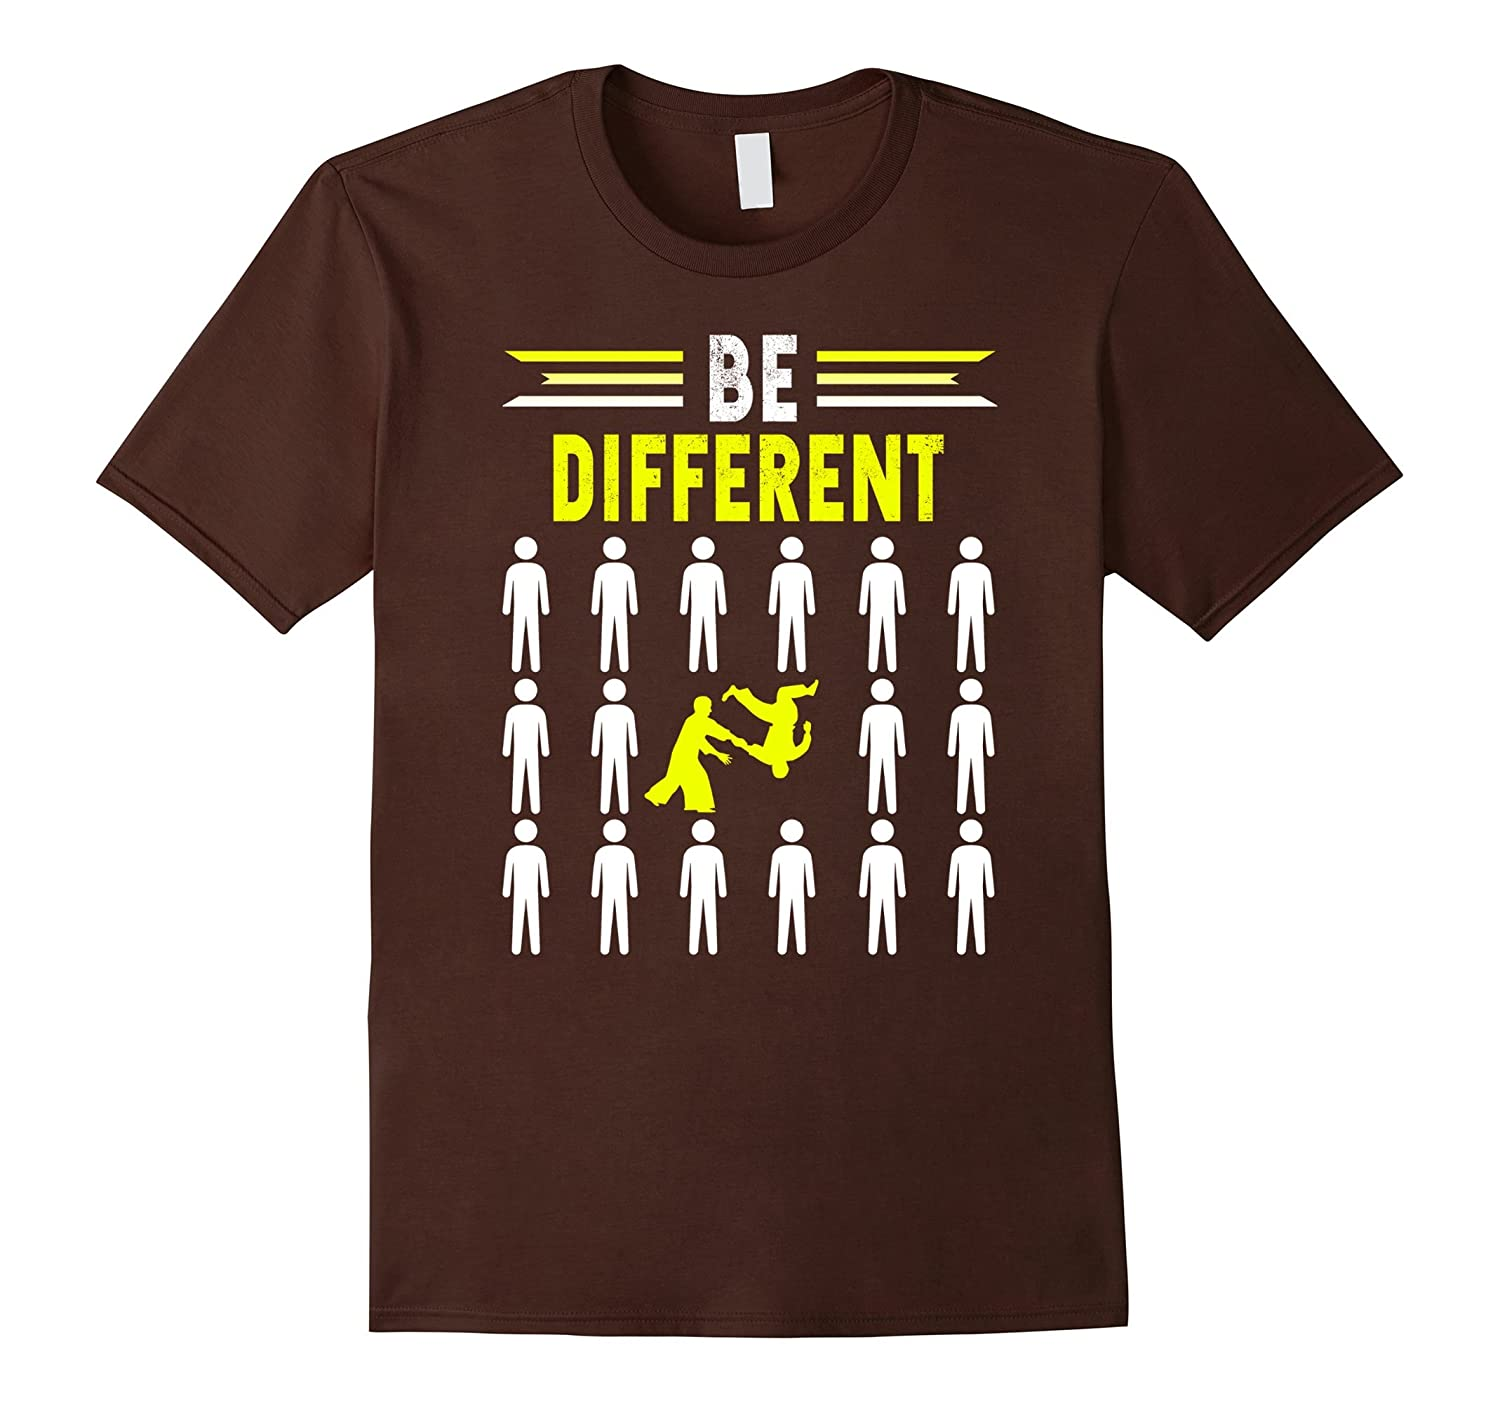 Aikido Shirts - Aikido Be Different T shirts-ah my shirt one gift